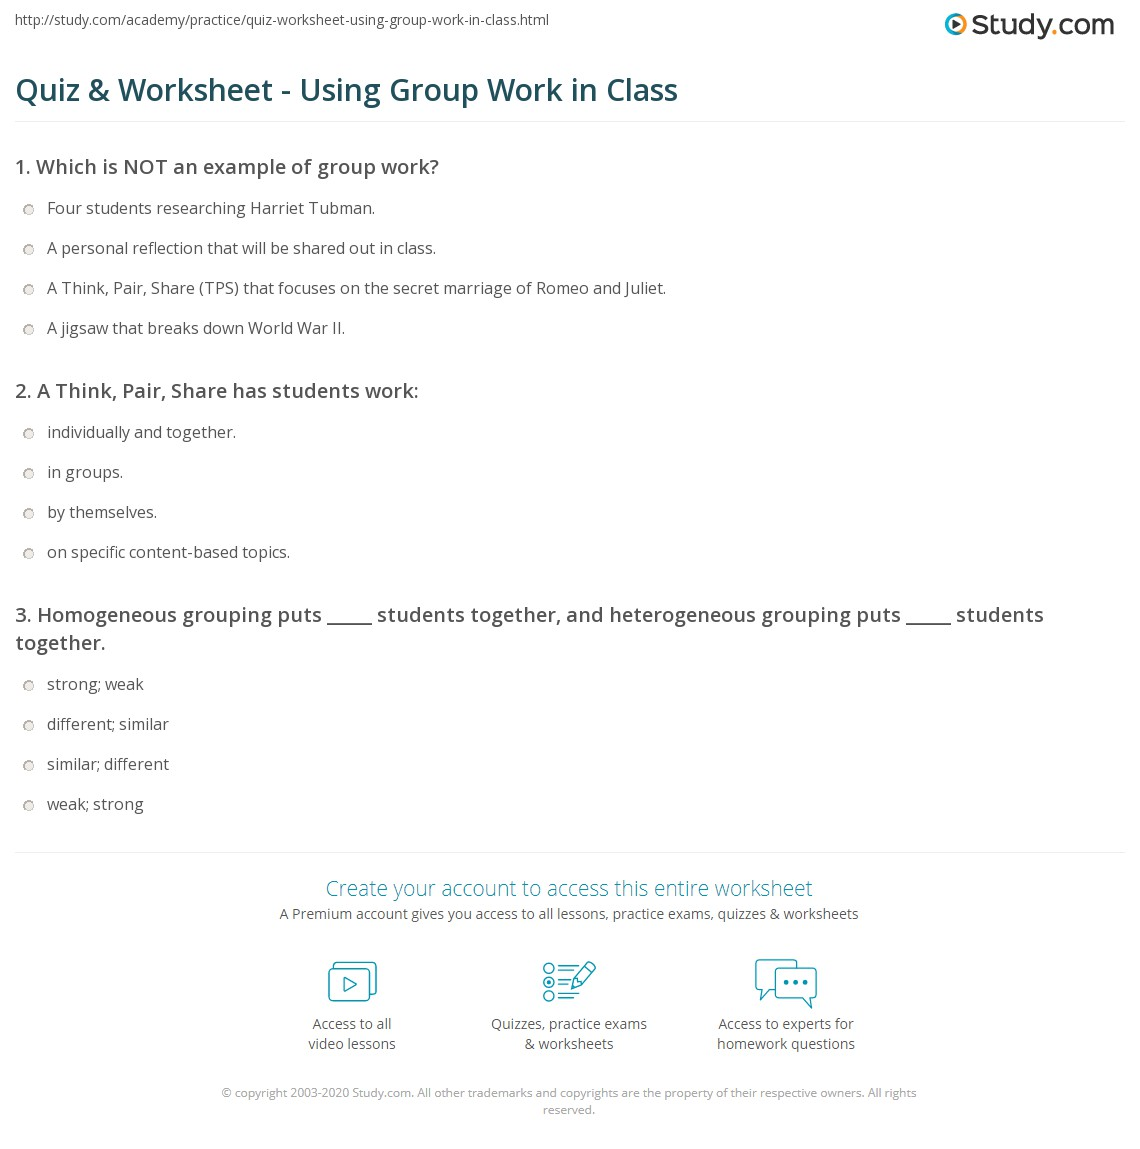 Worksheets Think Pair Share Worksheet quiz worksheet using group work in class study com a think pair share has students work